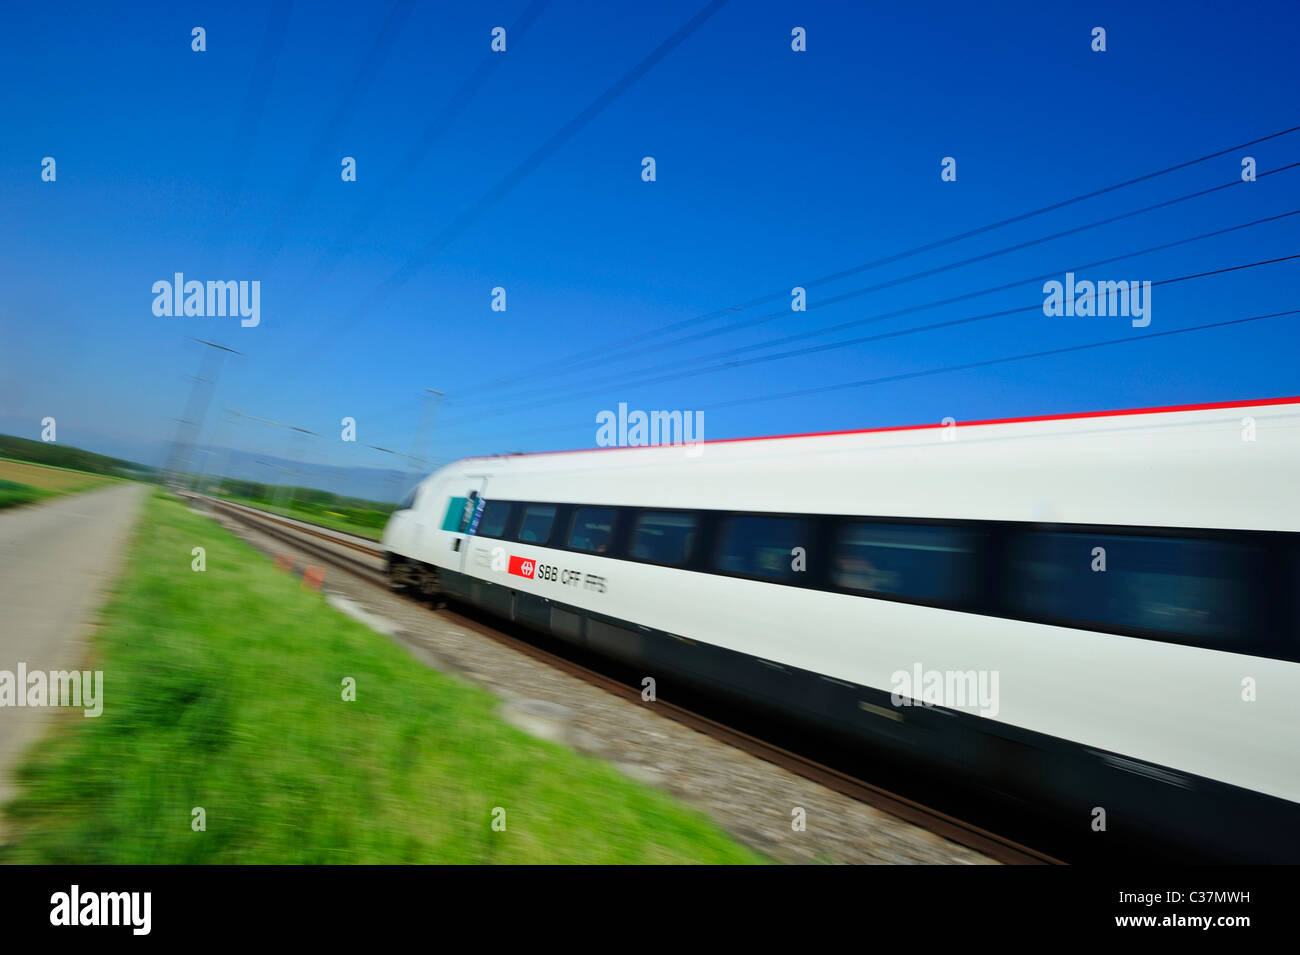 A Swiss train. Motion blur used to give sense of speed. Focus on the CFF logo - Stock Image